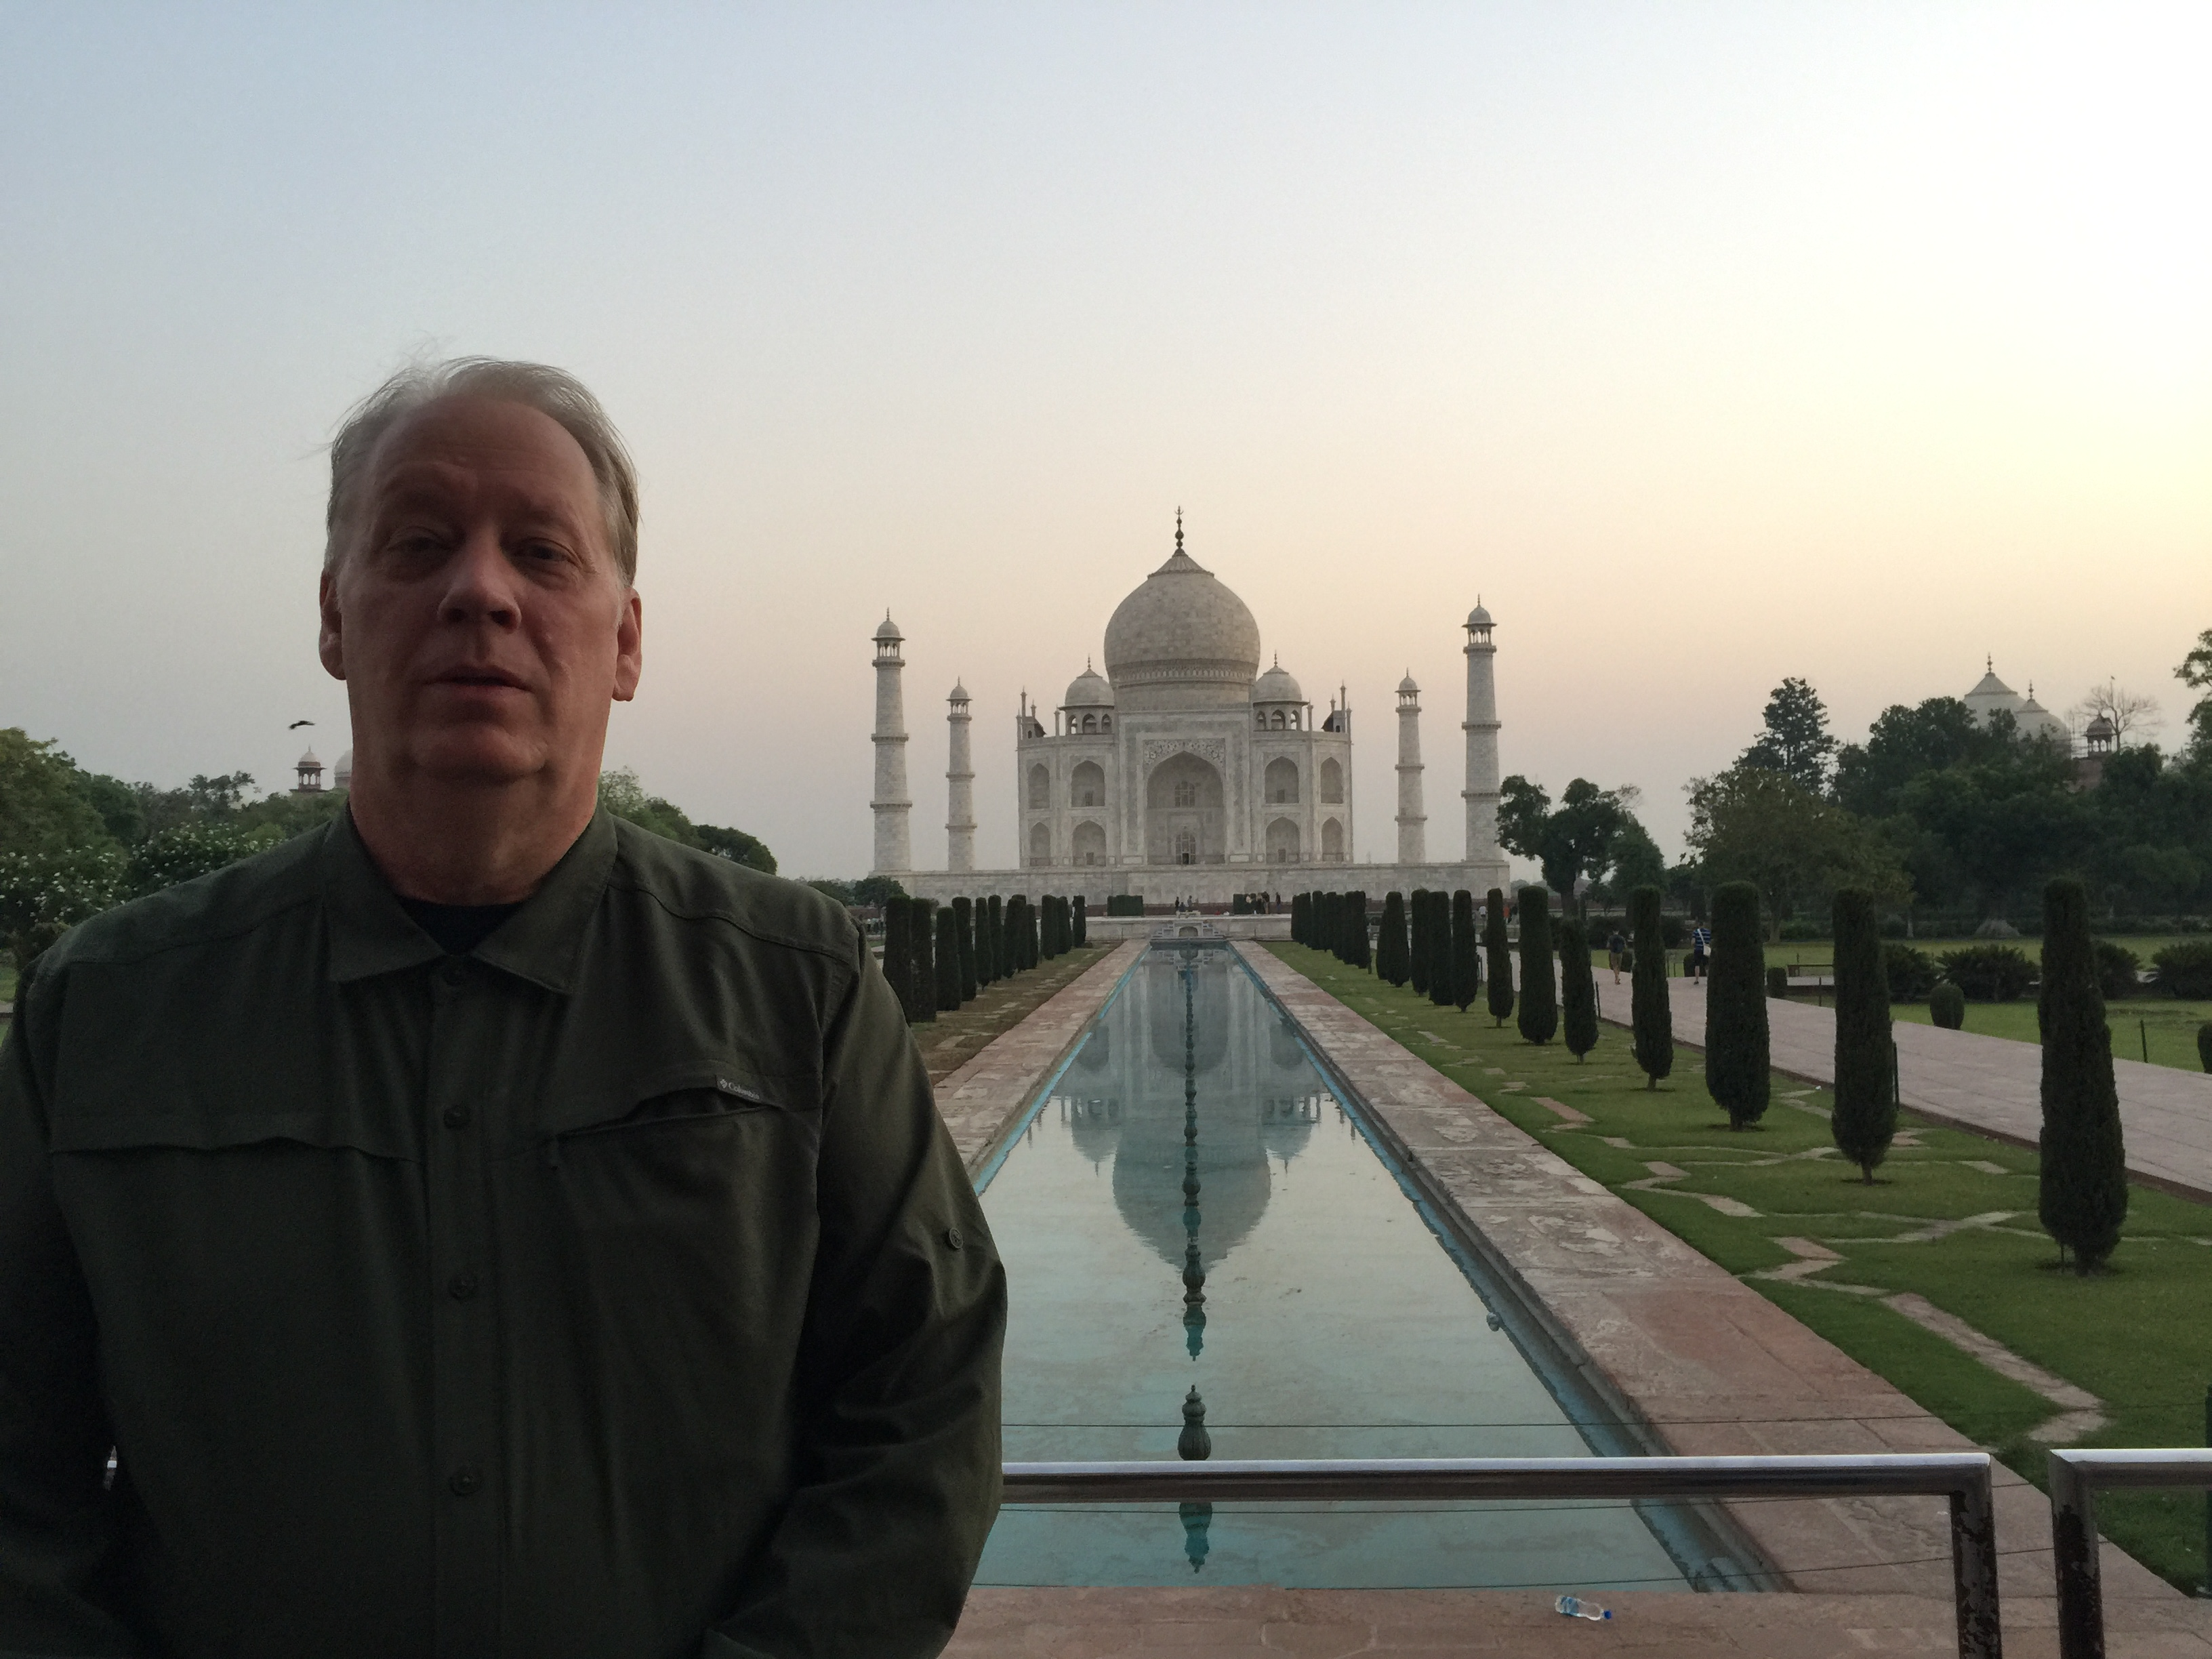 Mr. Hassrick at the Taj Mahal